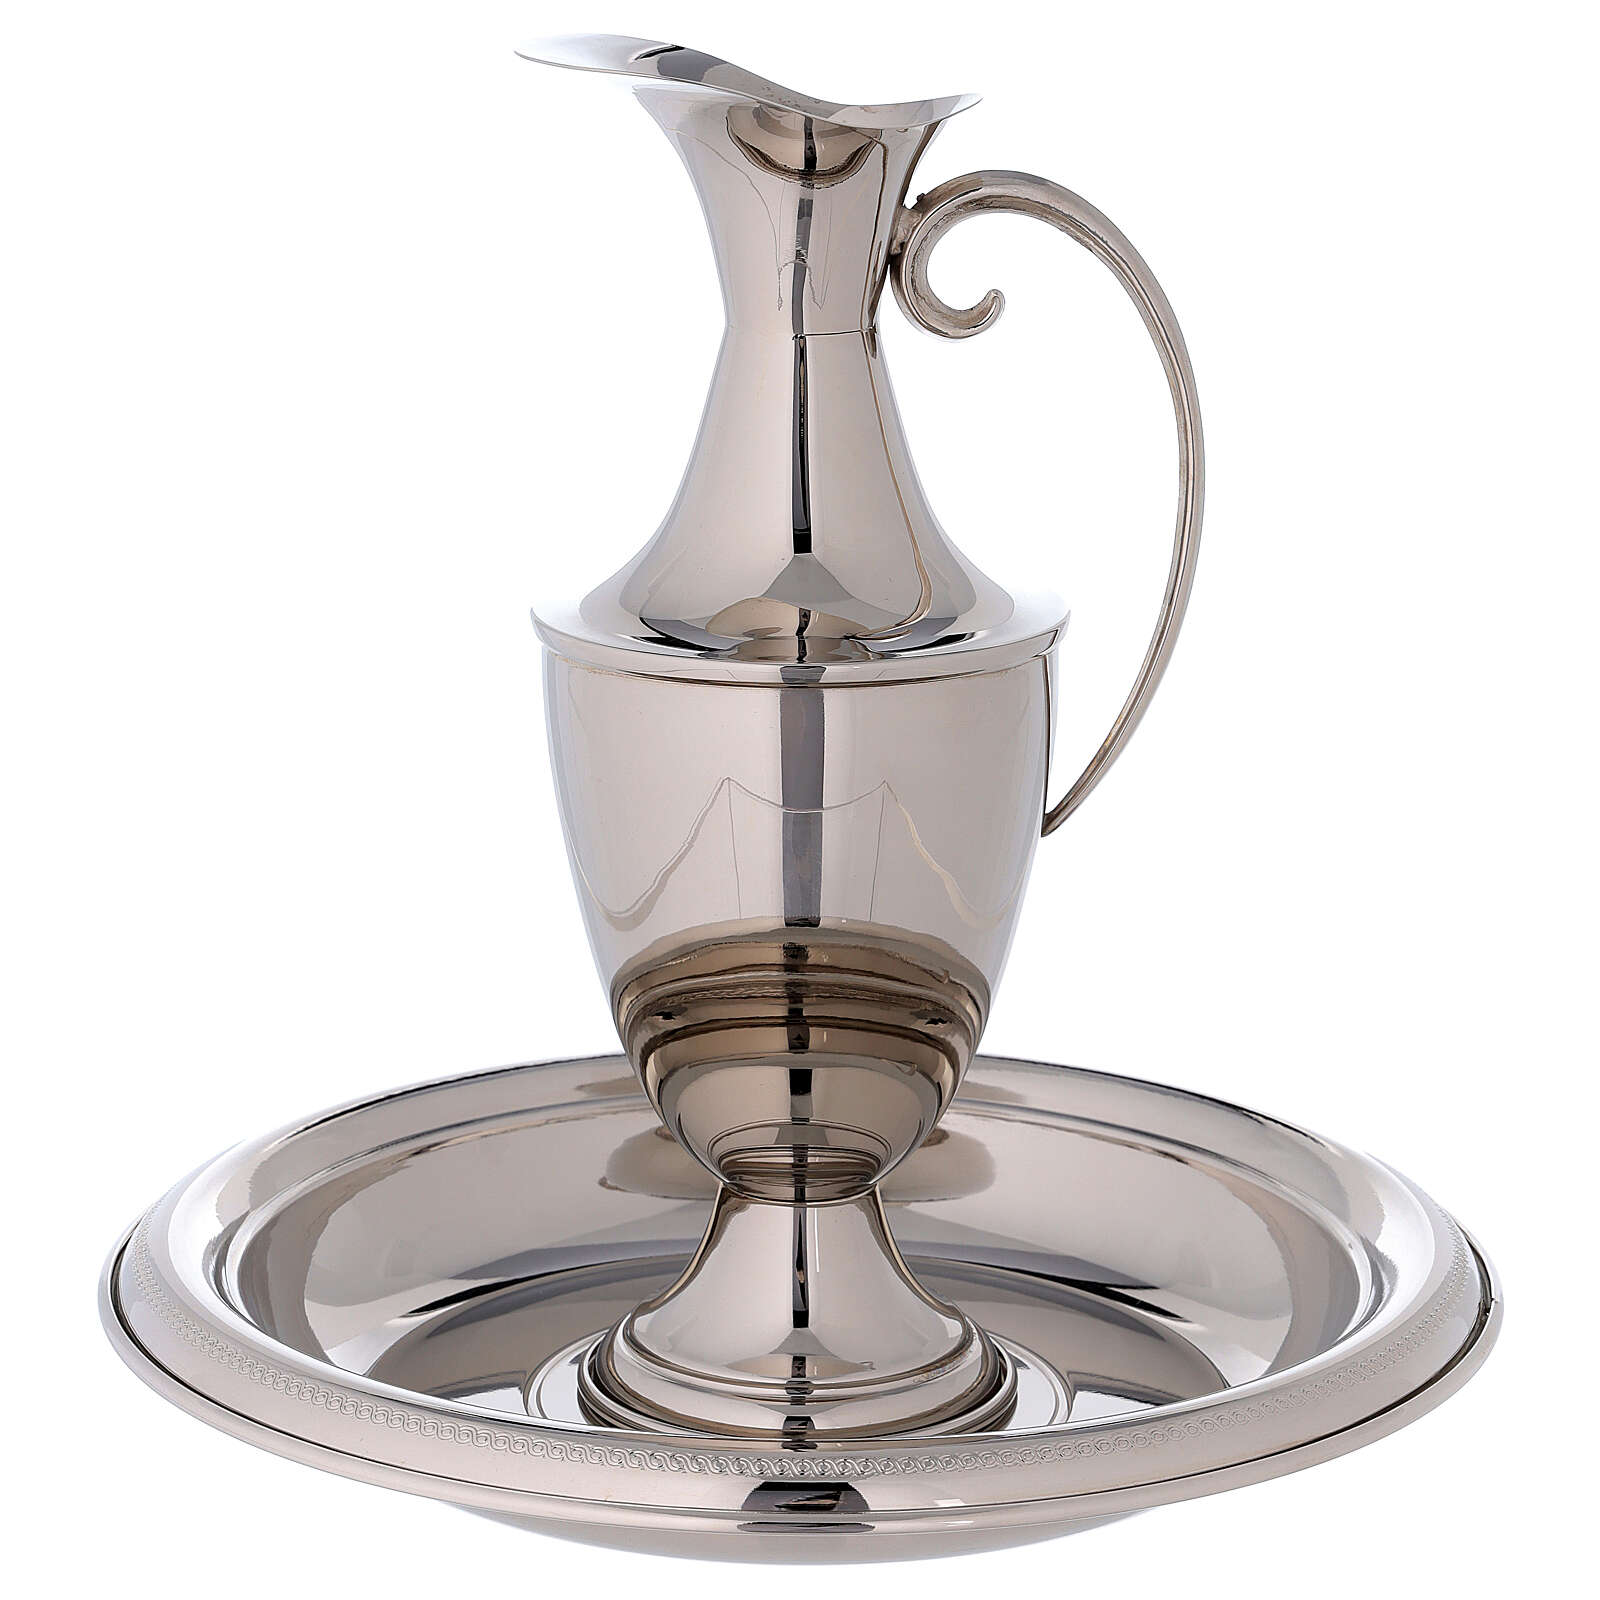 Classic silver plated ewer 3